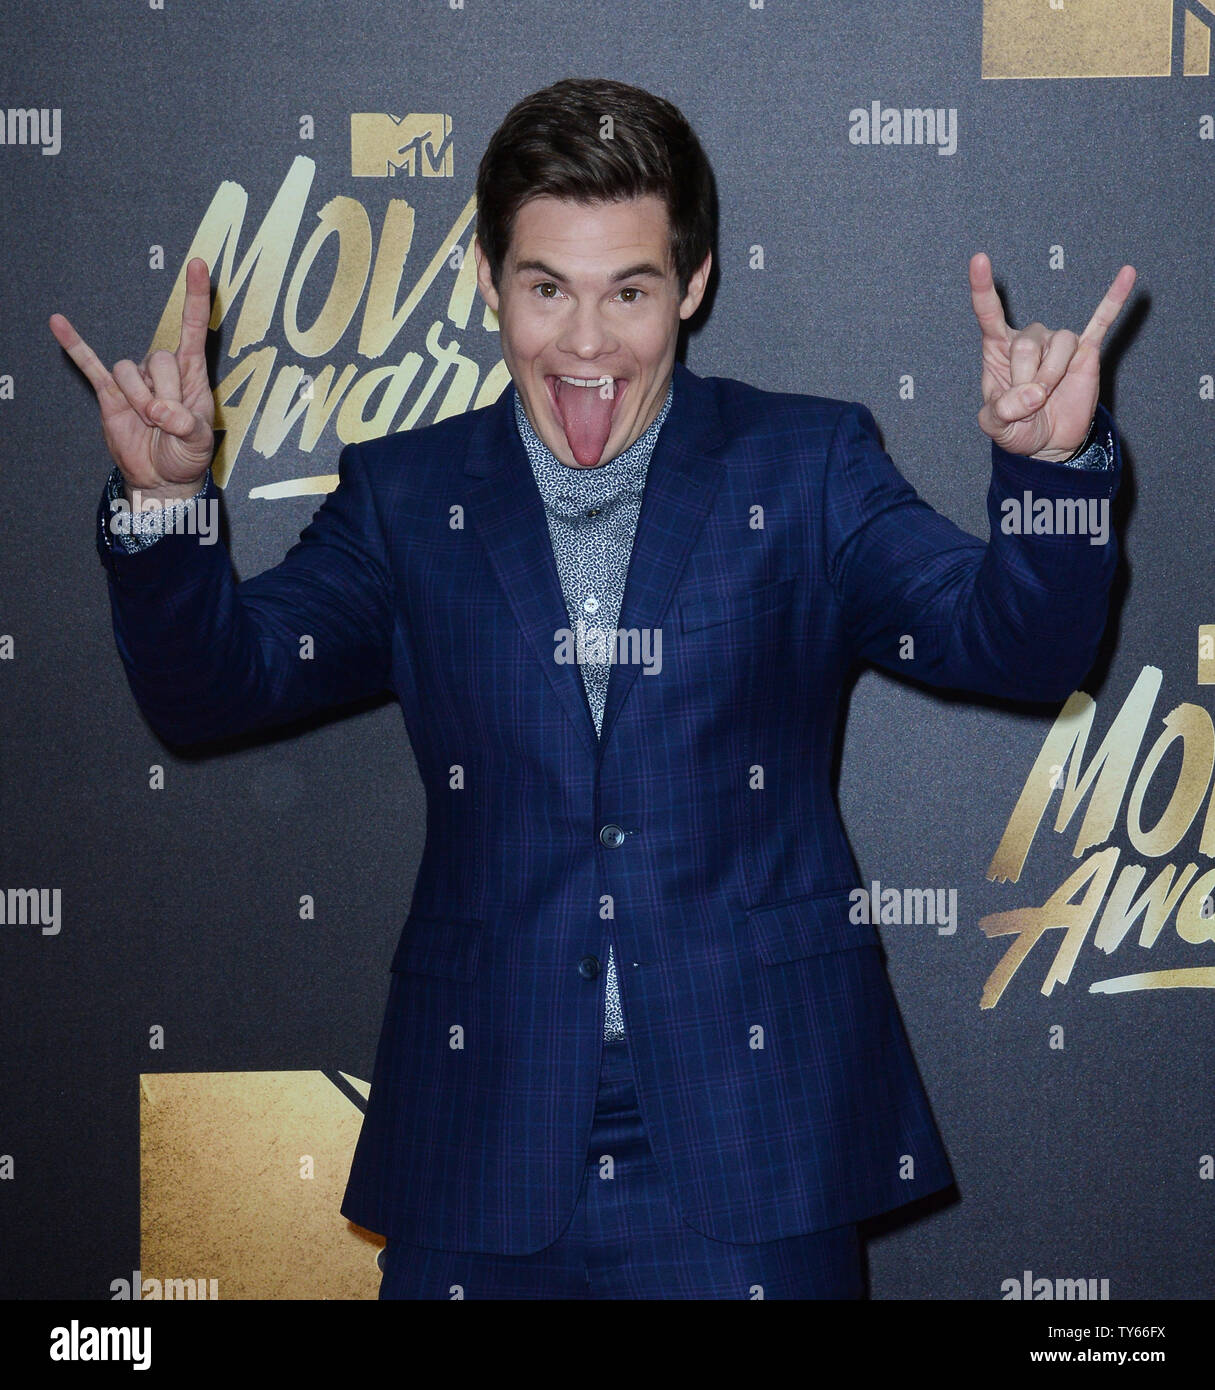 Actor Adam DeVine attends the MTV Movie Awards at Warner Bros. Studios in Burbank, California on April 9, 2016. The MTV Movie Awards airs Sunday, April 10 at 8pm ET/PT.  Photo by Jim Ruymen/UPI - Stock Image